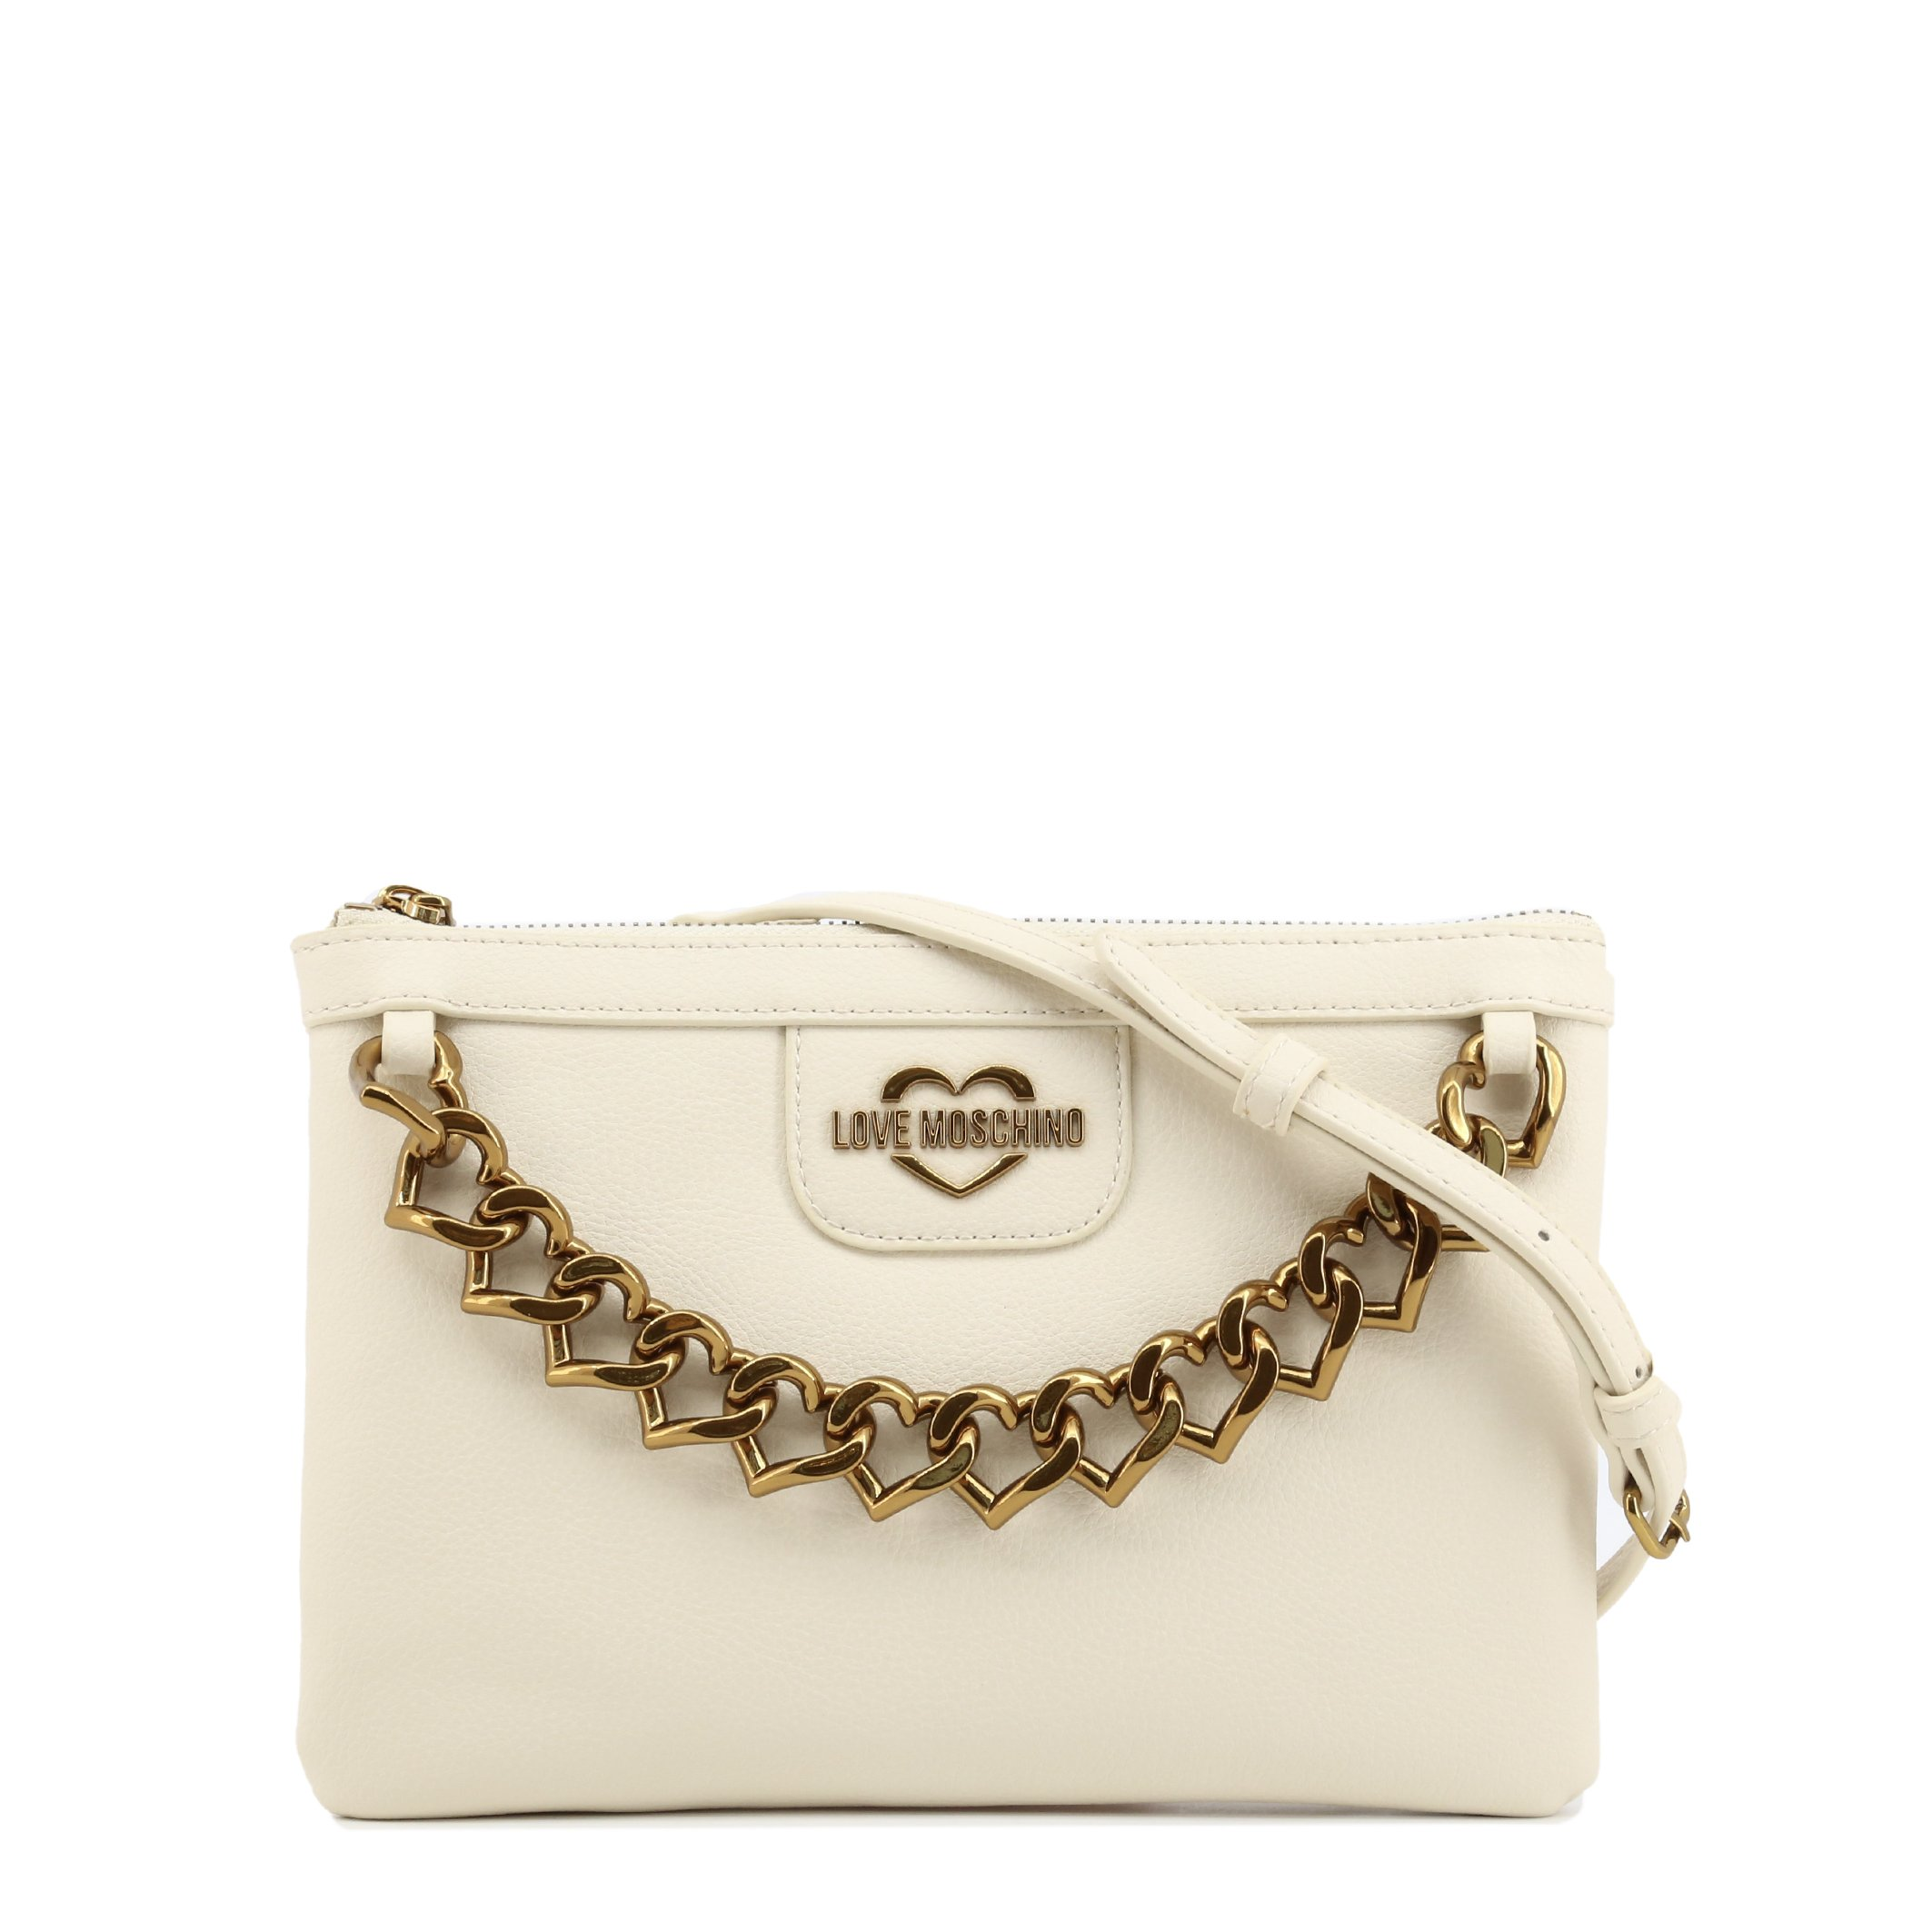 Love Moschino Women's Clutch Bag Various Colours JC4098PP1BLO - white NOSIZE